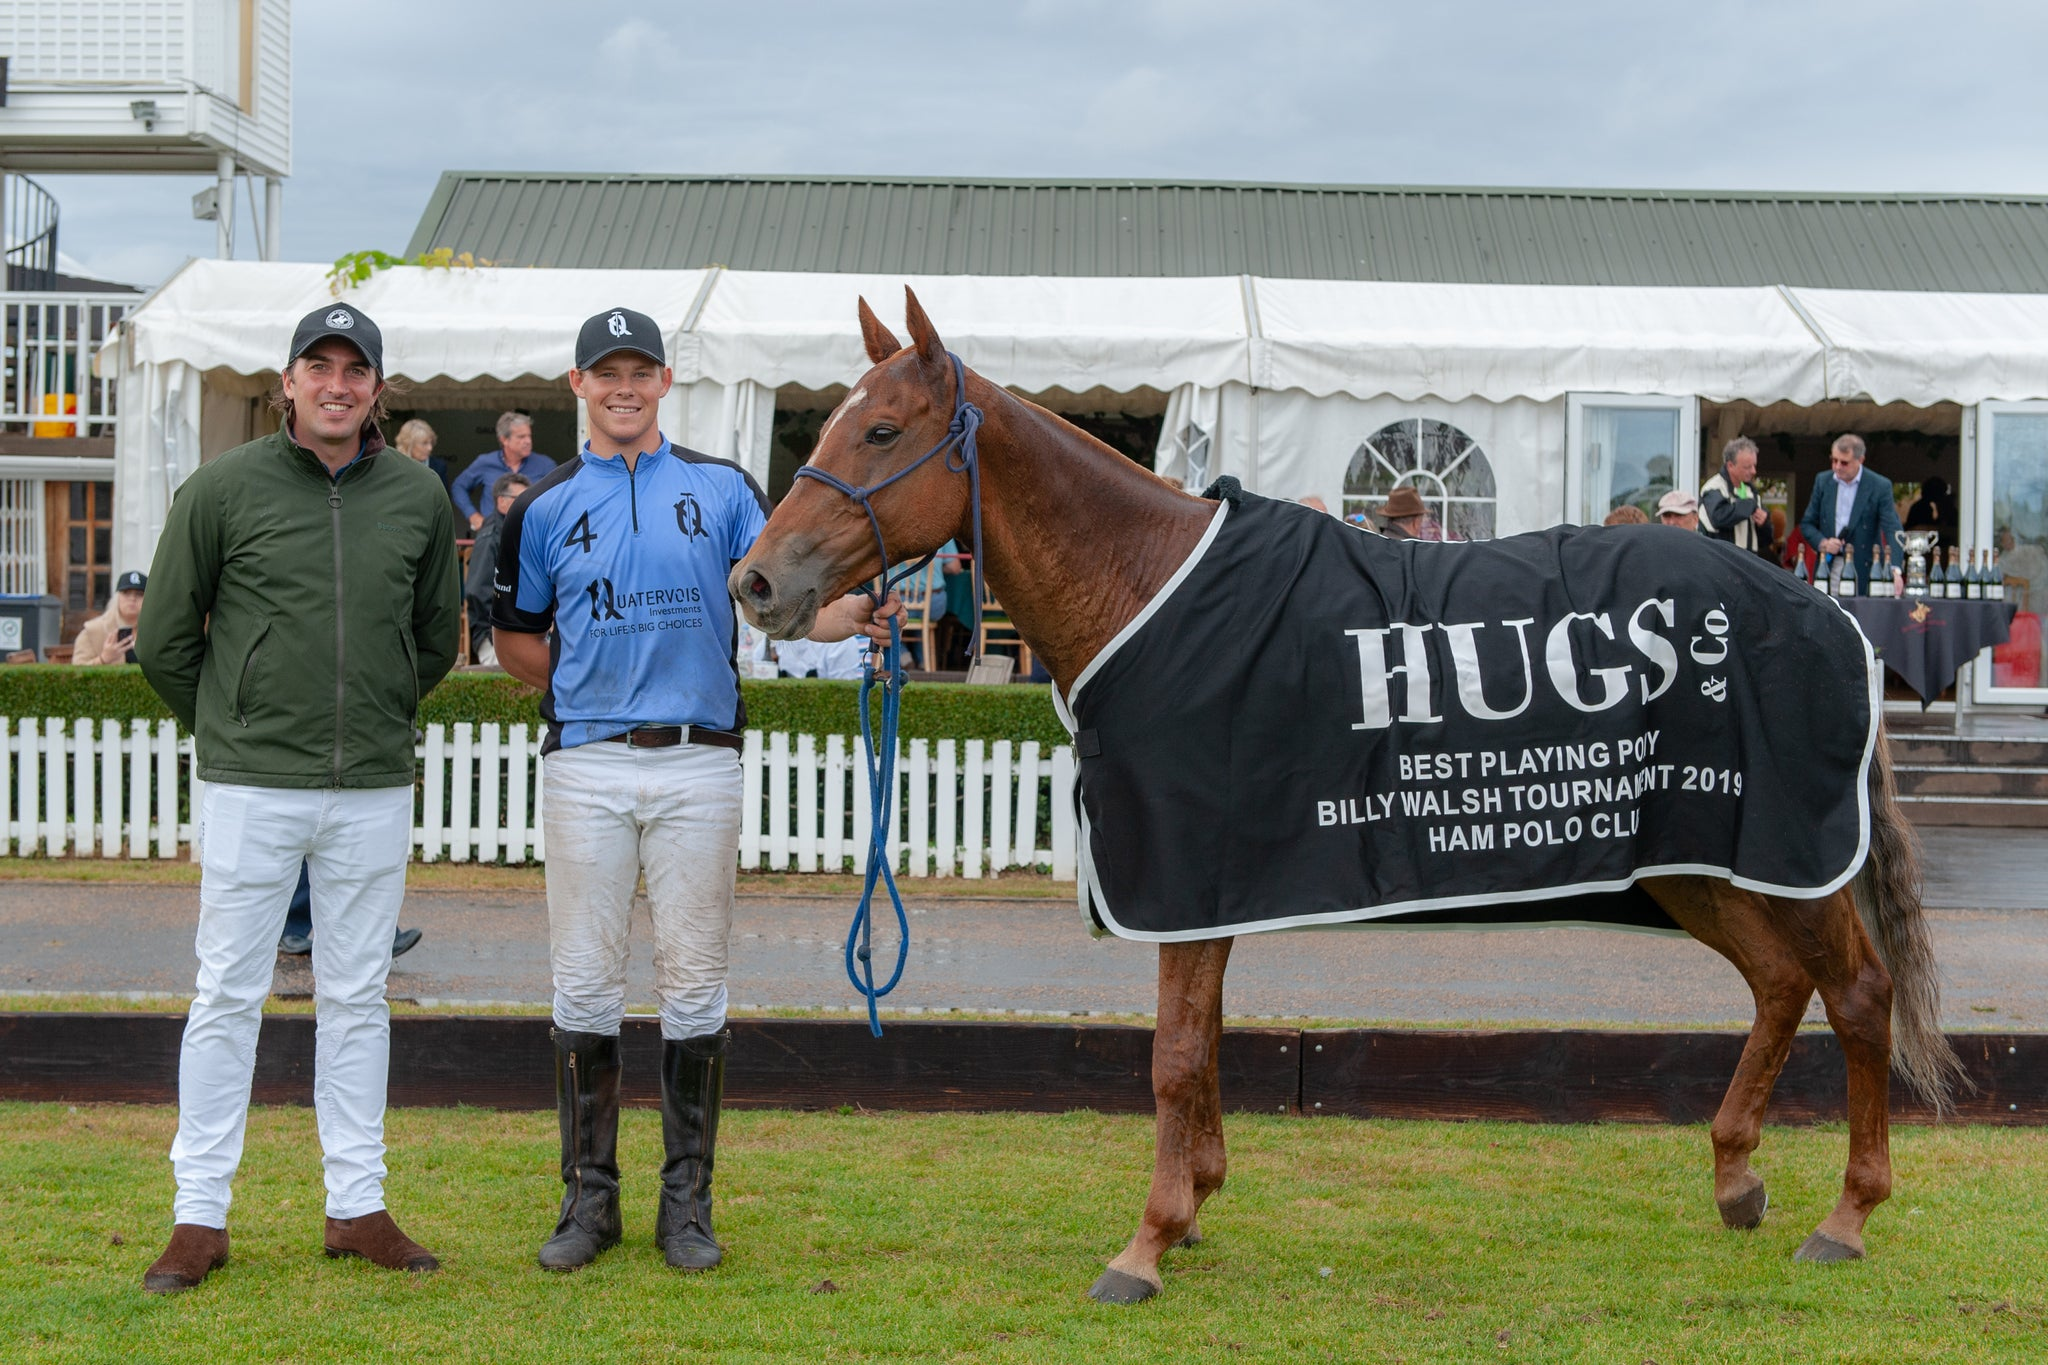 Hugs & Co. Ham Polo Club